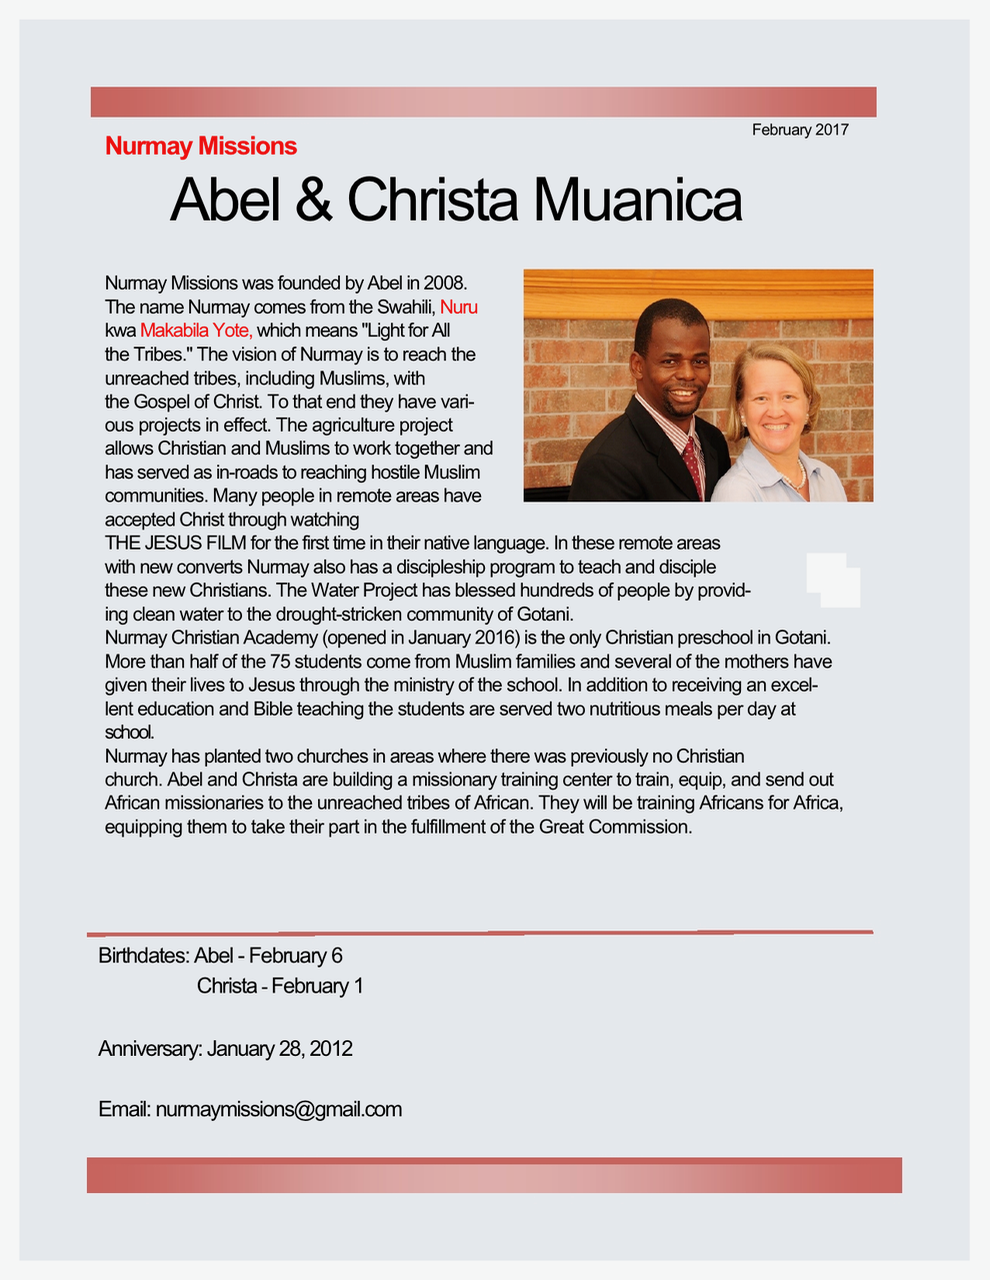 Abel and Christa Muanica